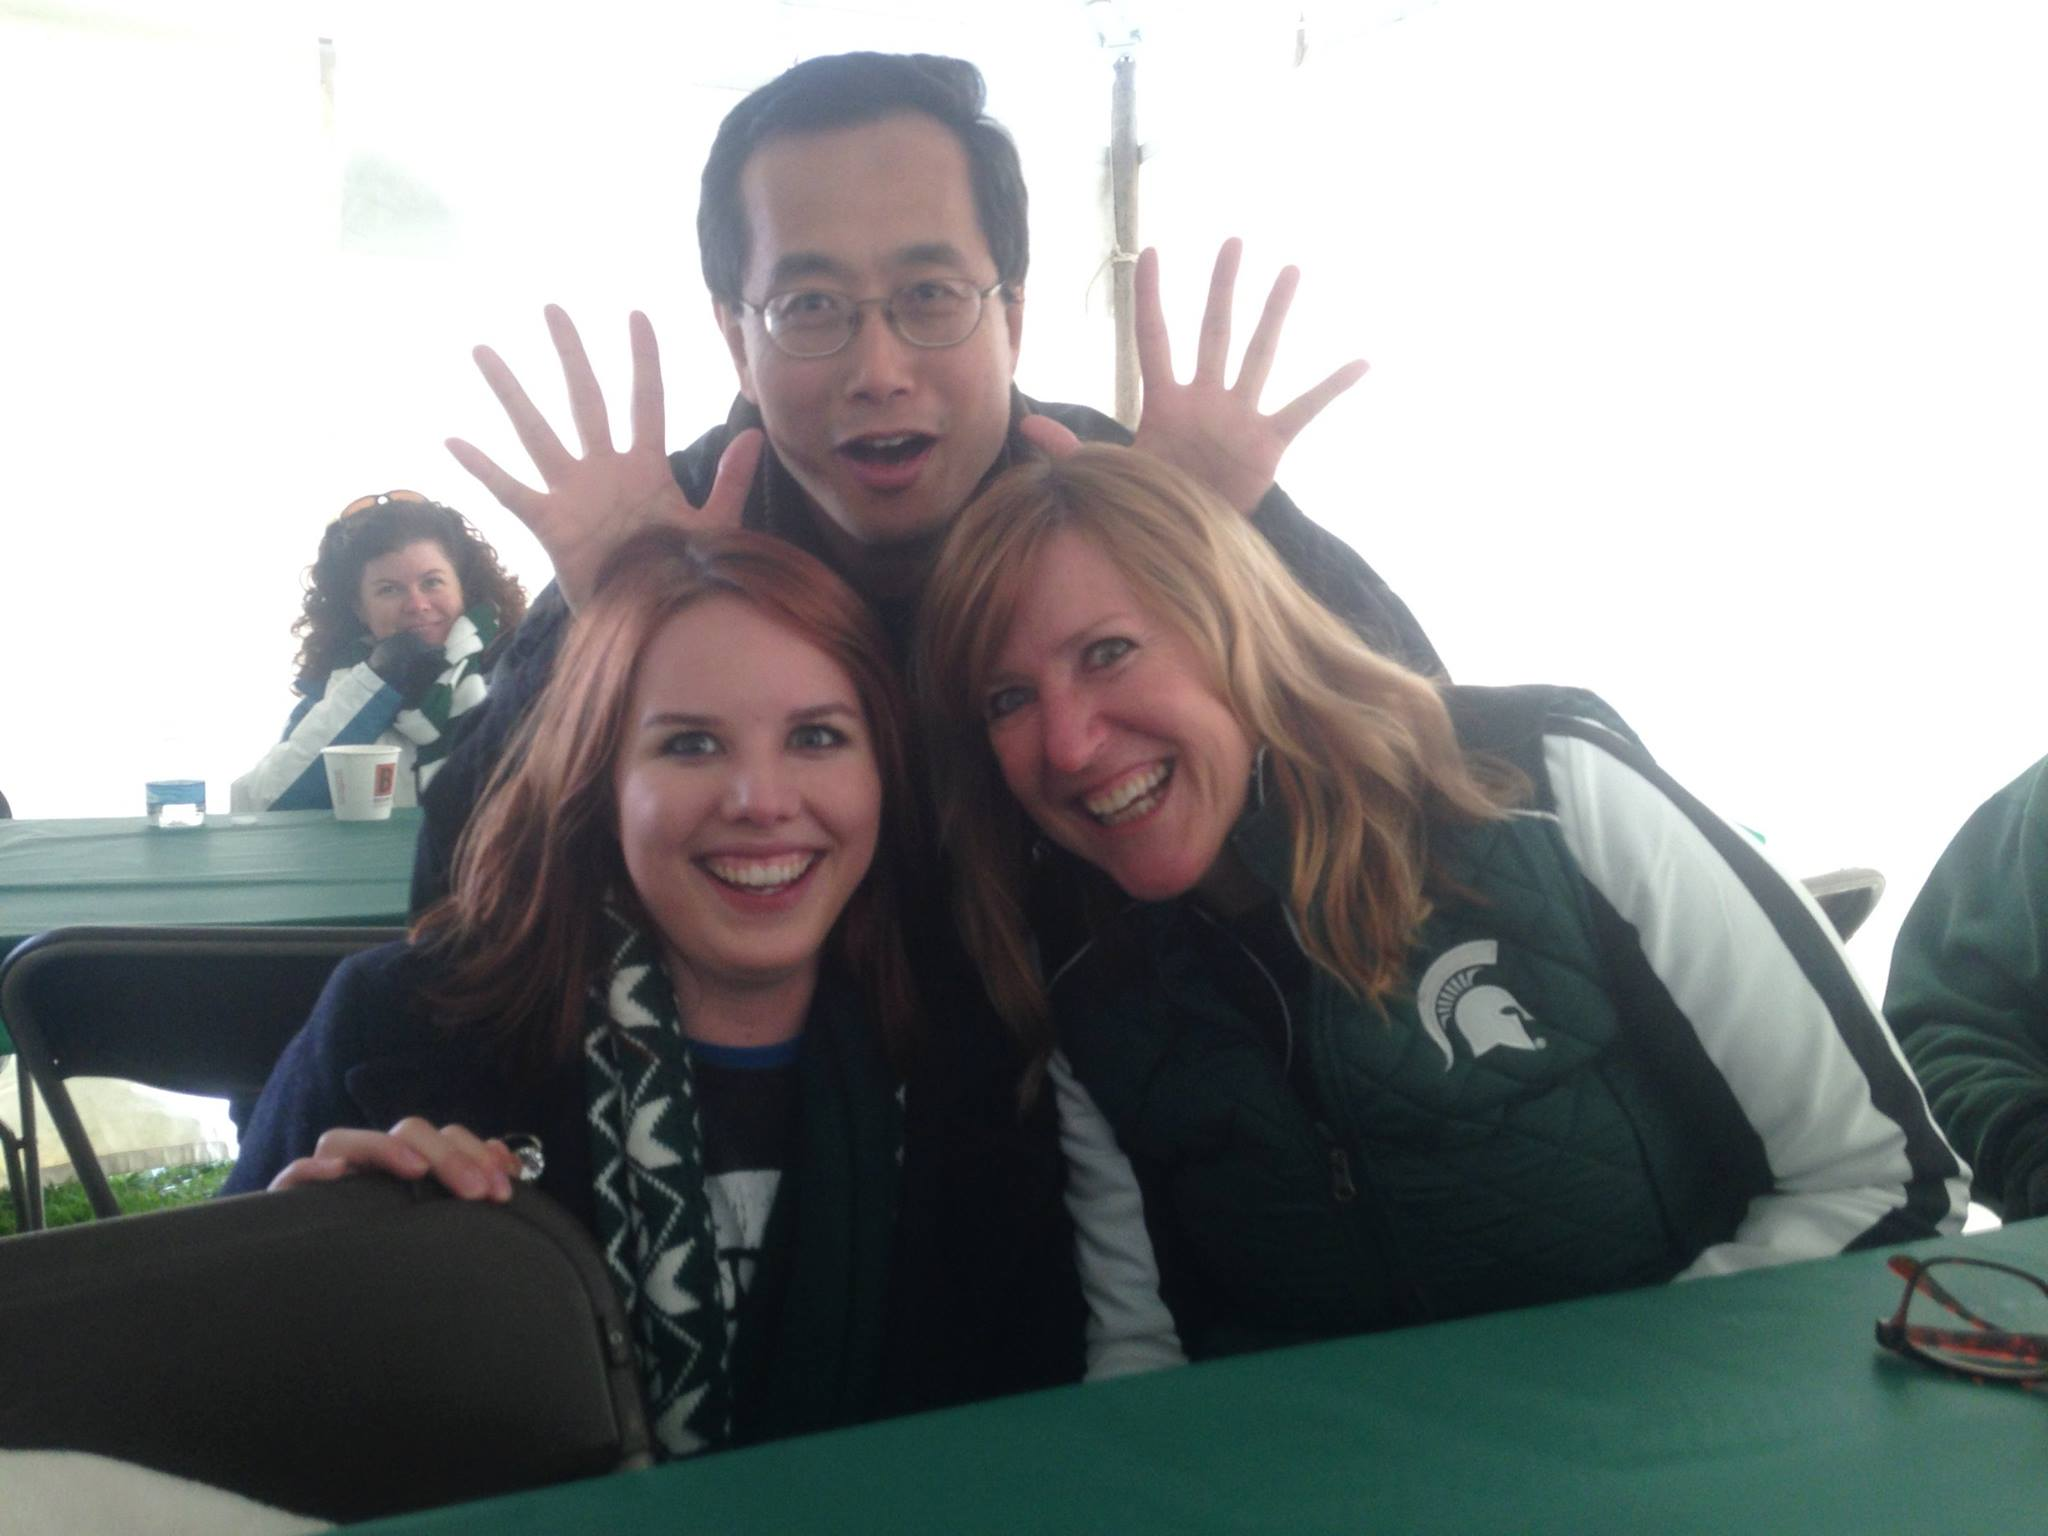 Wishing Marcy Heberer happy trails after 14 years with MSU